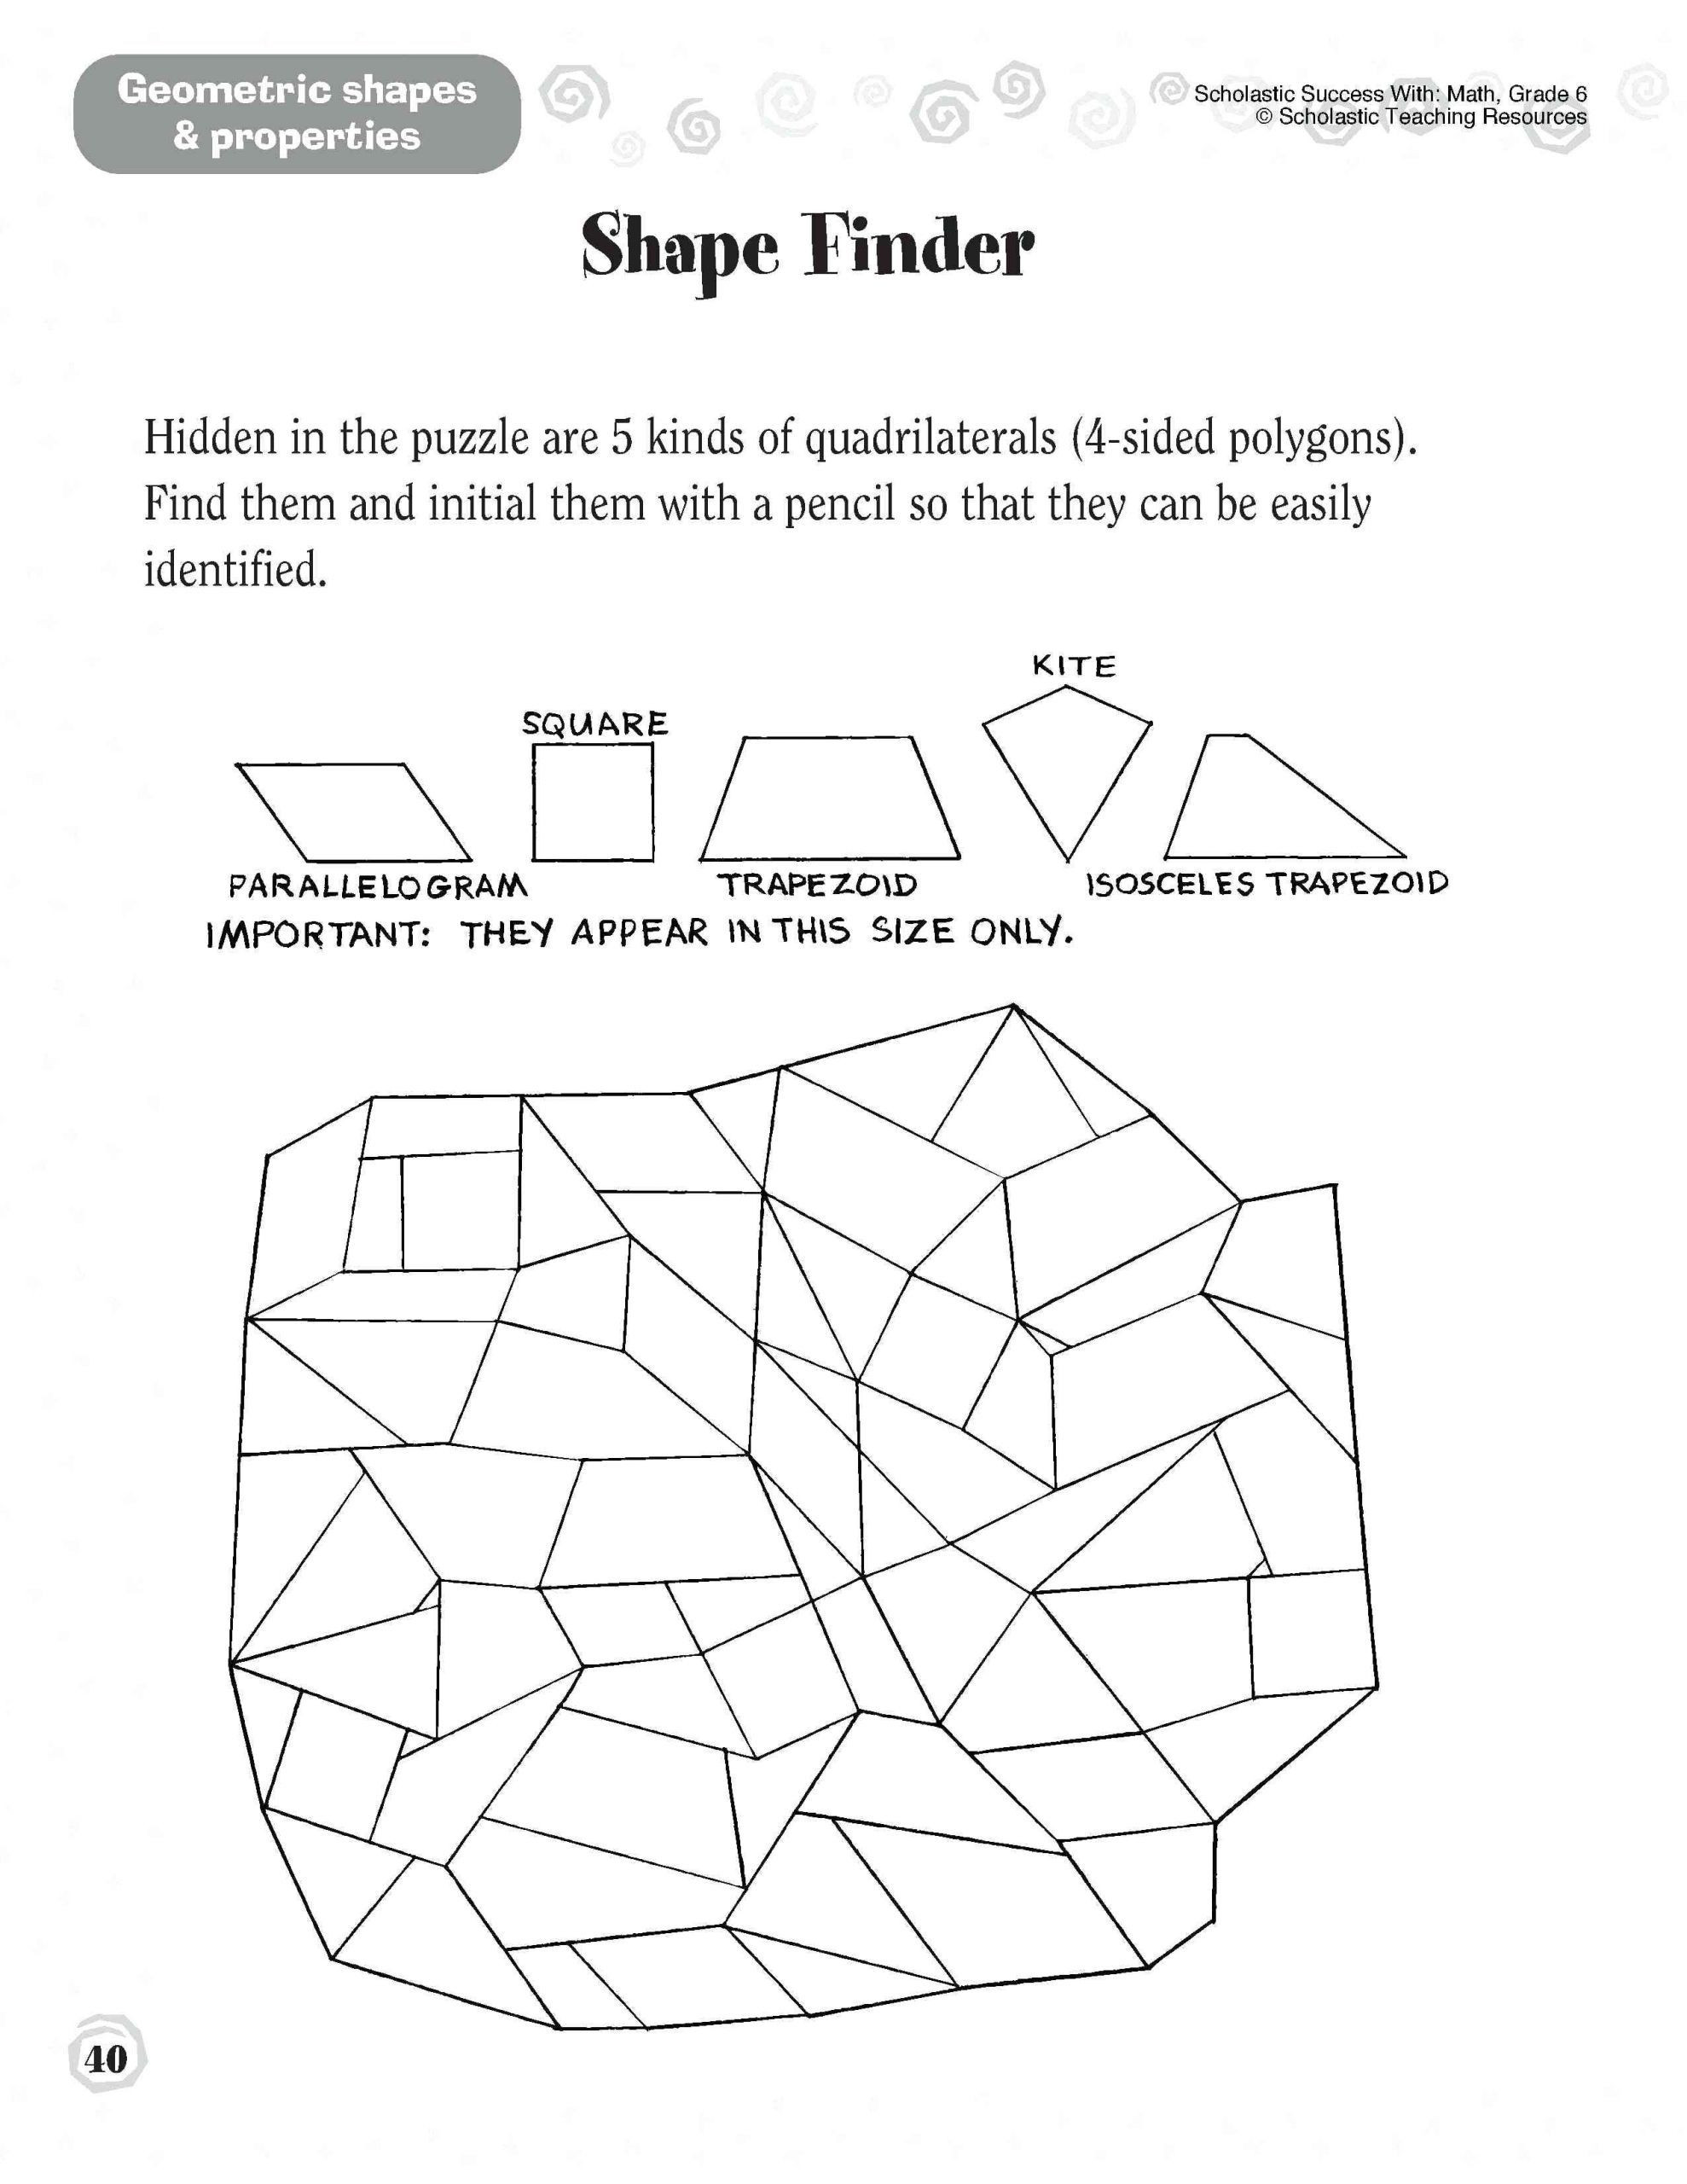 3rd Grade Geometry Worksheets Pdf 5 Free Math Worksheets Third Grade 3 Addition Adding whole